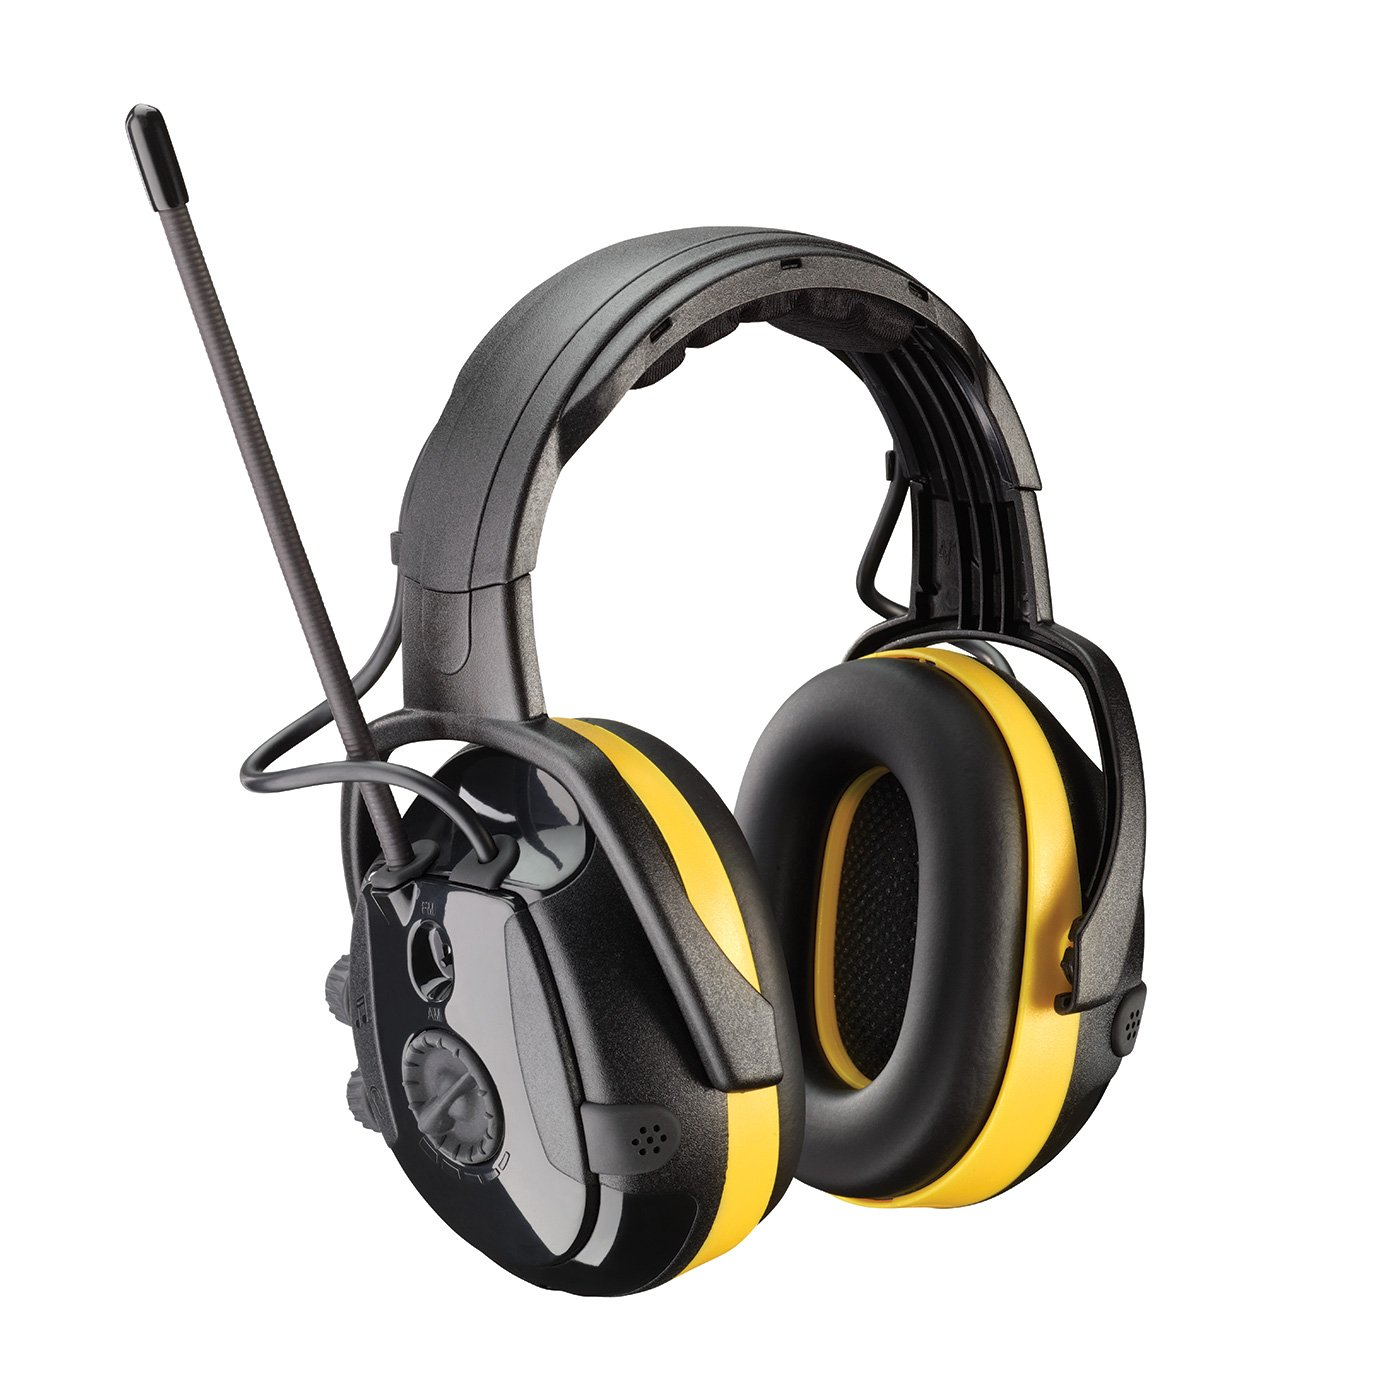 React 264-46002 NRR 24 Electronic Ear Muff with Headband Adjustment, AM/FM Radio and Active Listening, Large